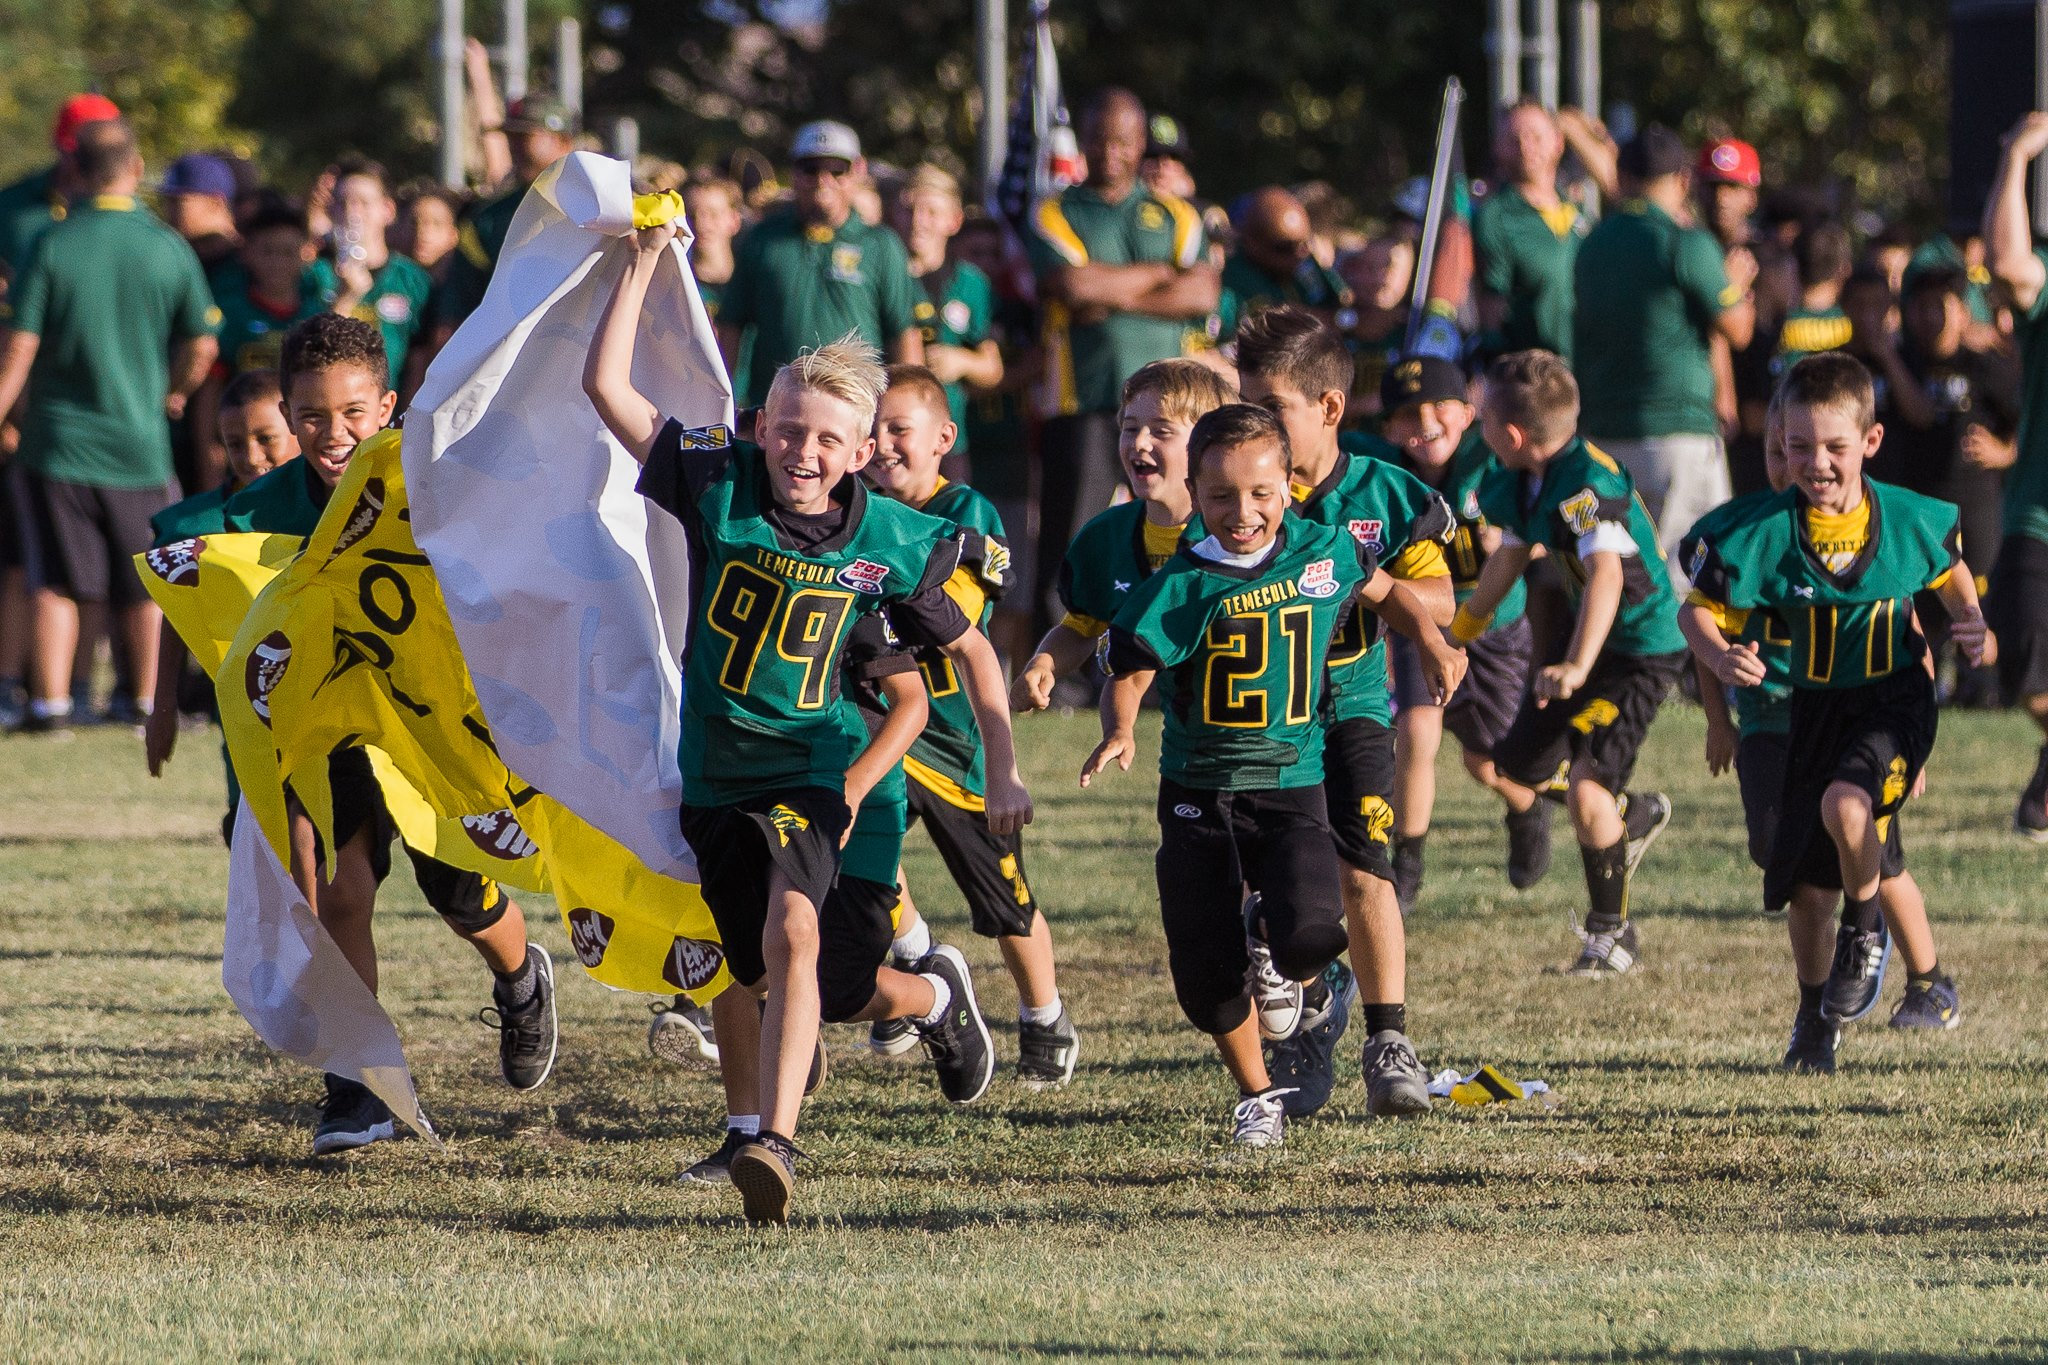 2017 TVPW Carnival - more than 700 supporters were in attendance to preview fourteen football teams, four cheer teams and local vendors.